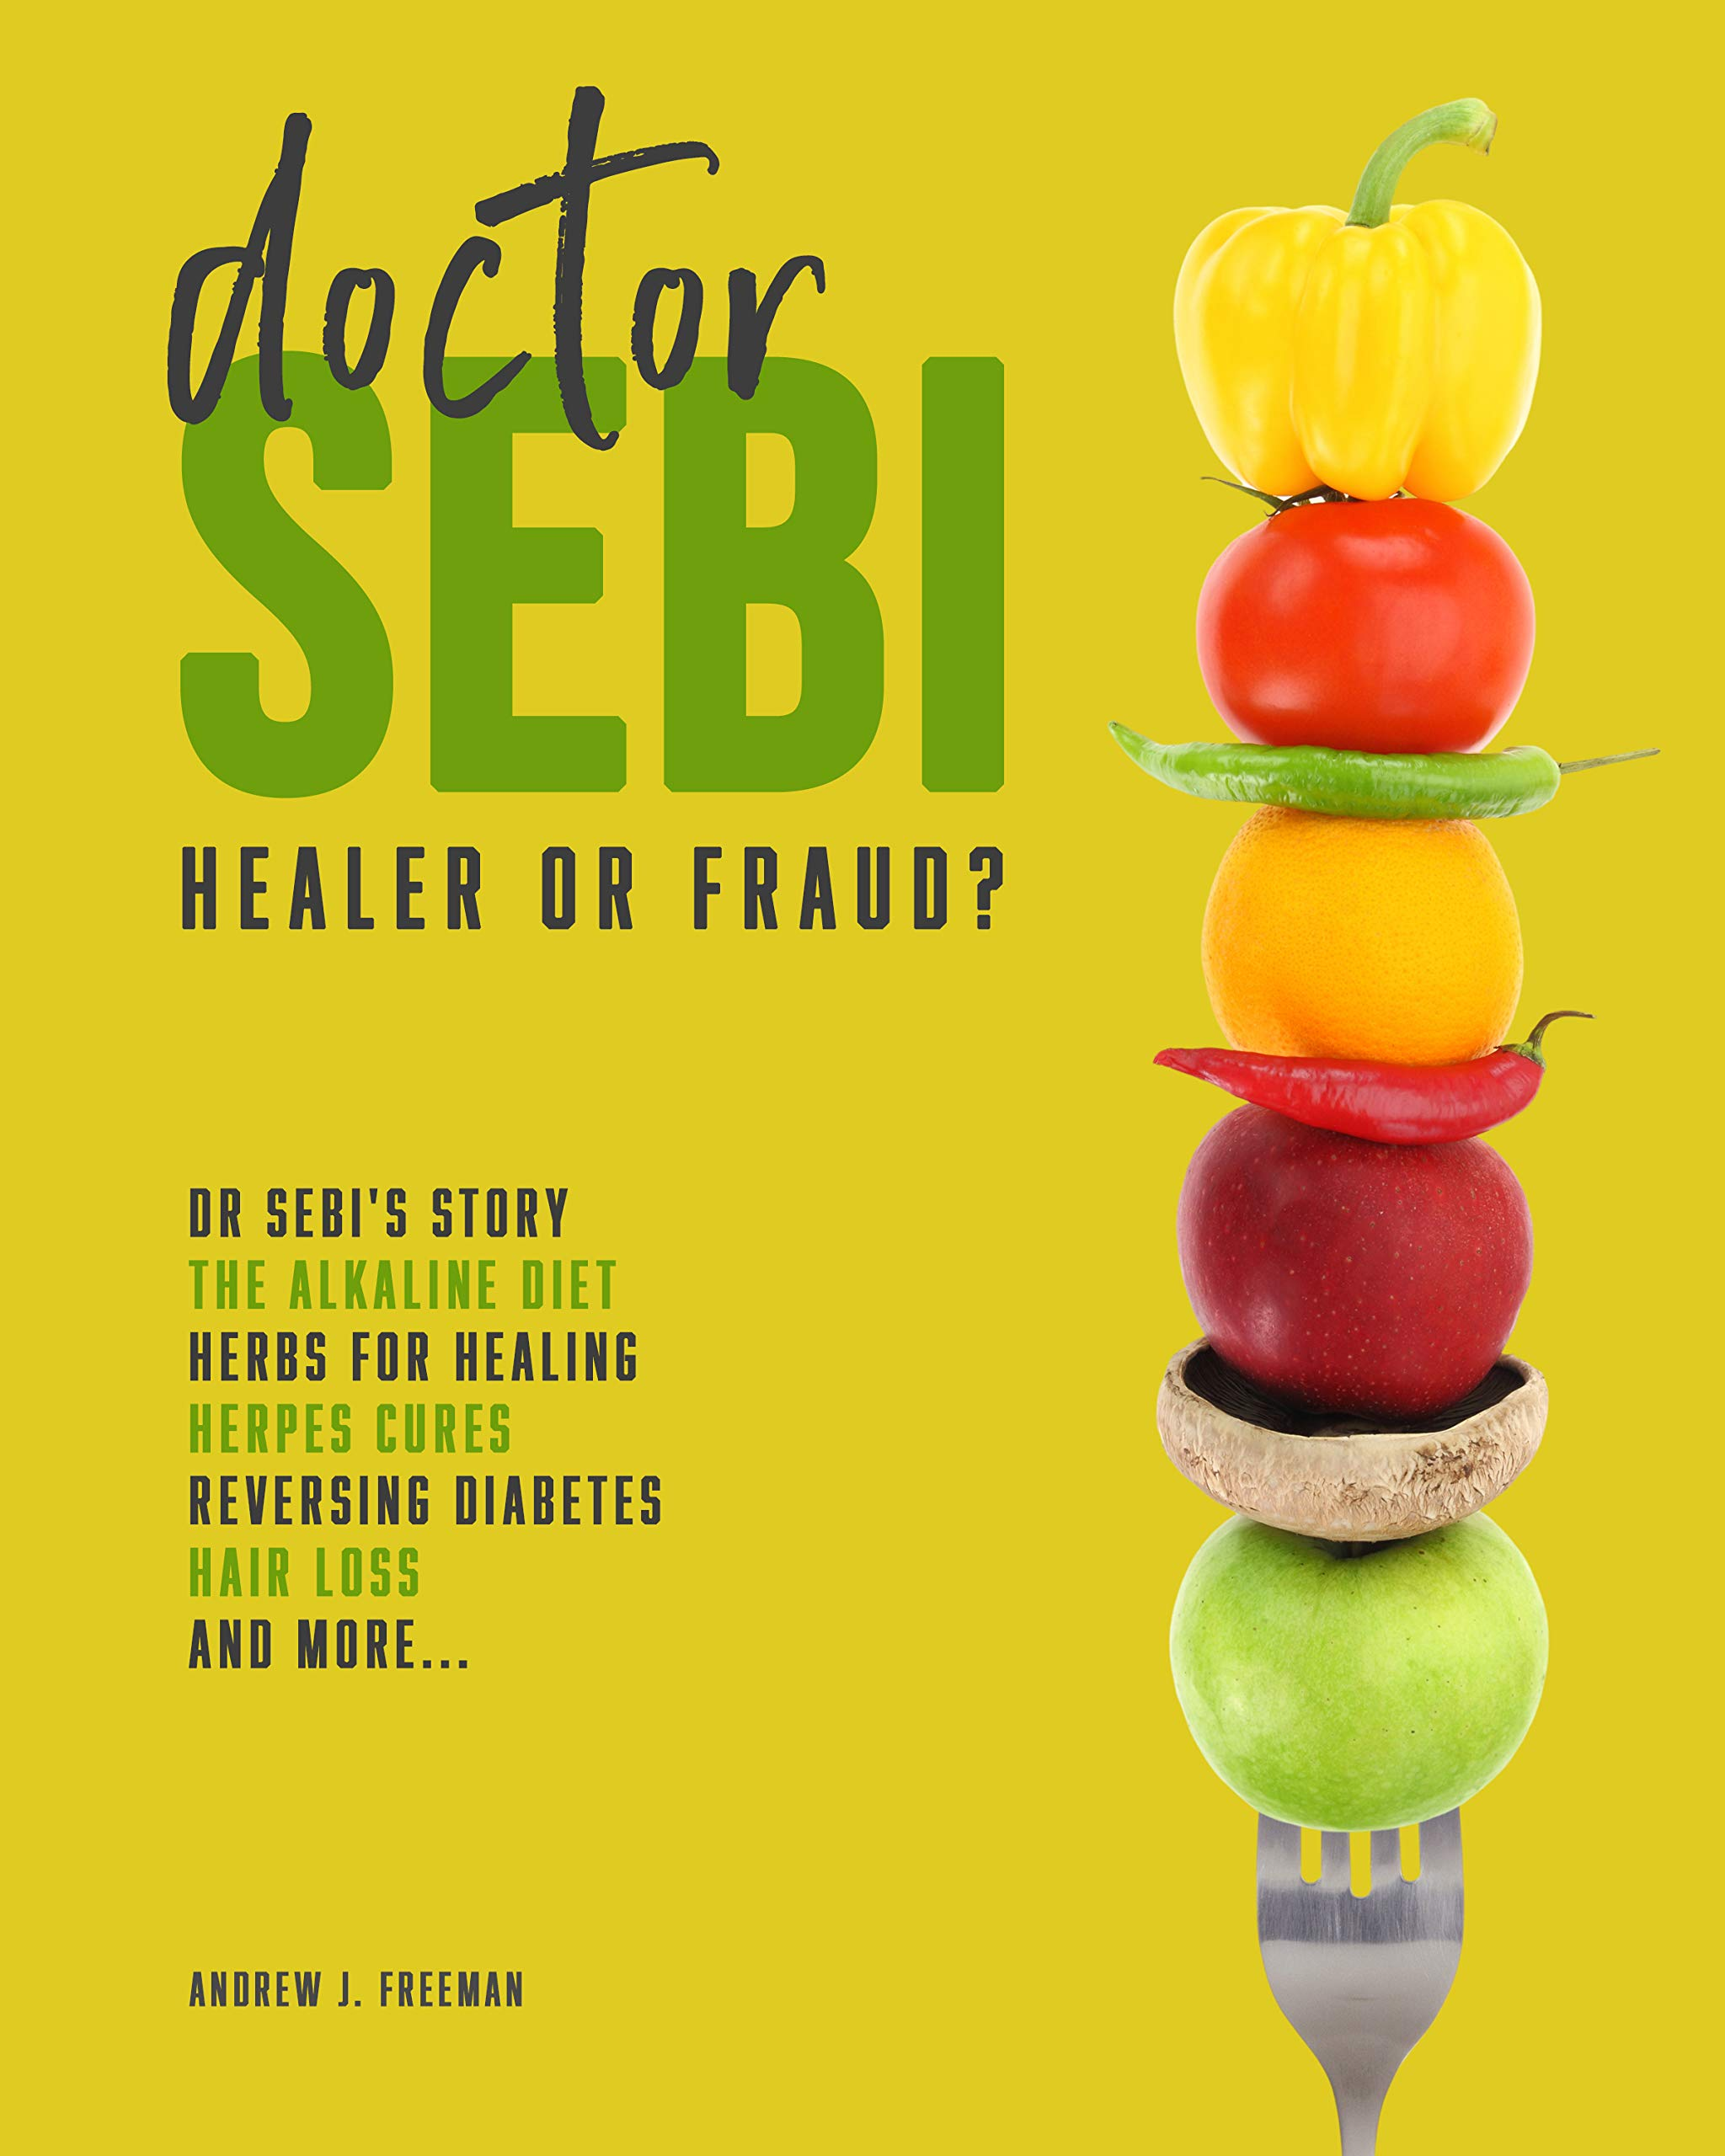 Doctor Sebi: Healer or Fraud? The Definitive Guide Containing Dr Sebi's Story, Recipes for the Alkaline Diet, Herbs for Healing, Herpes Cures, Reversing Diabetes, Hair Loss, and more.